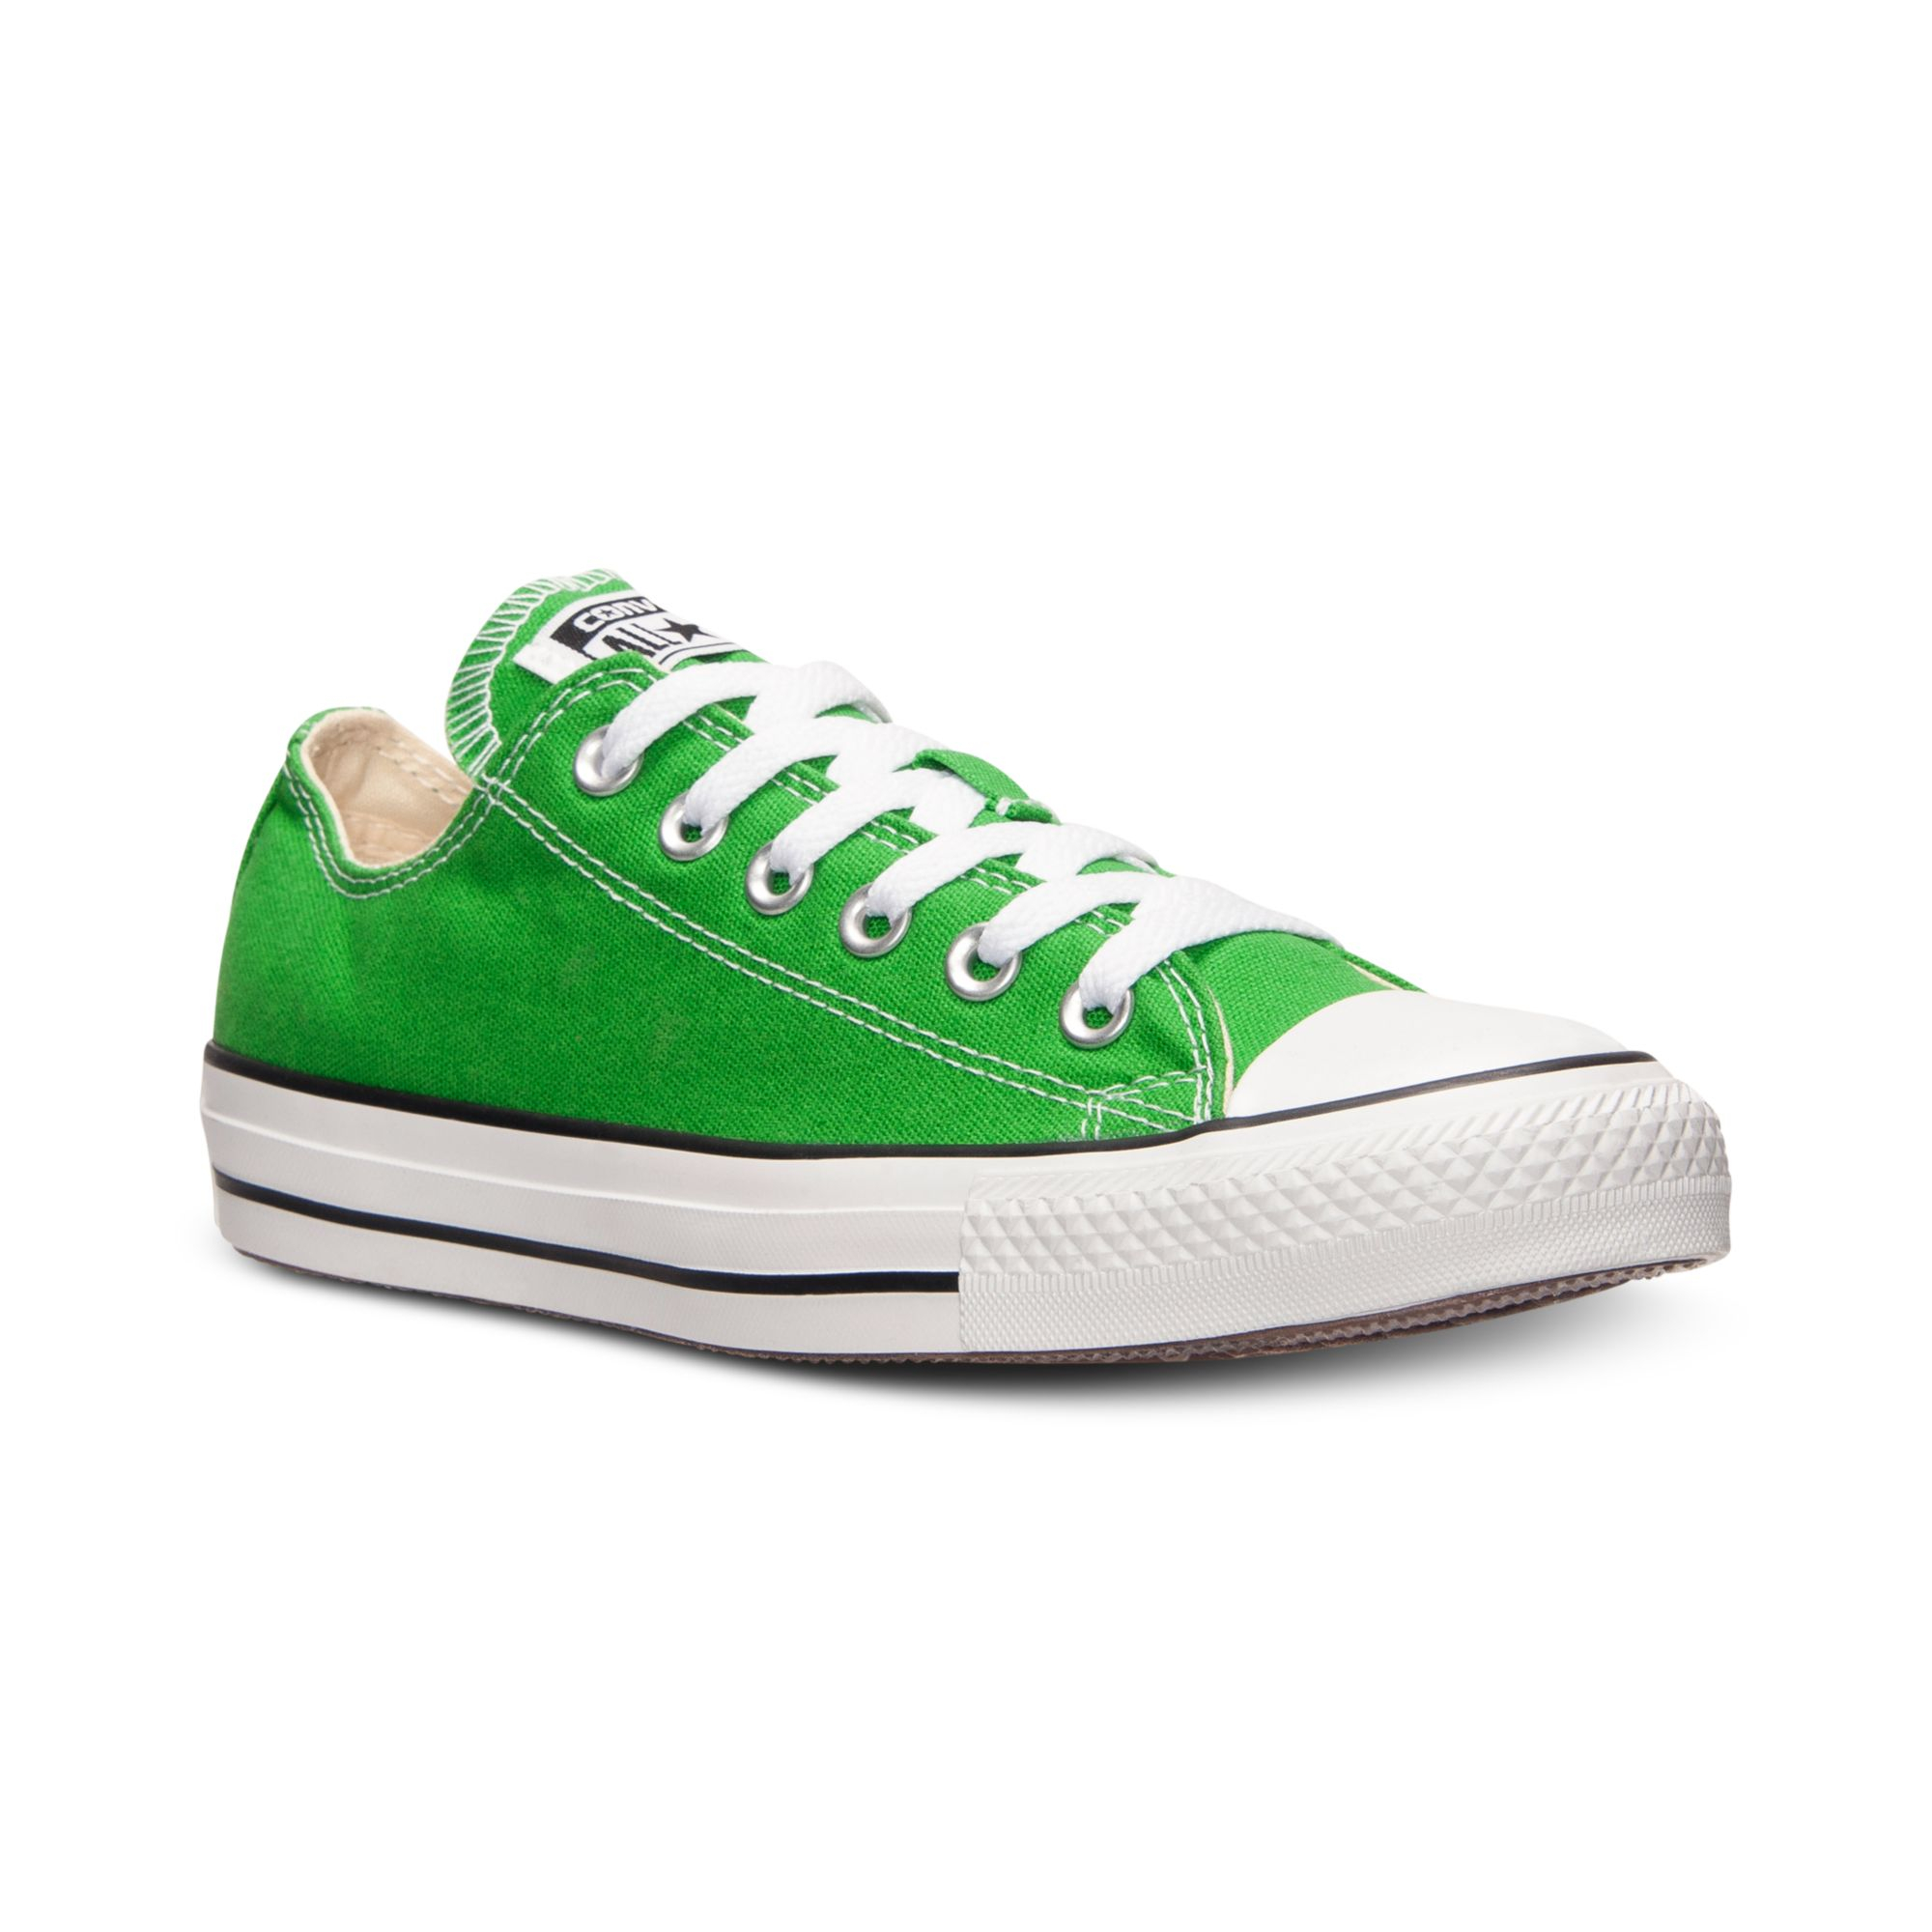 687437786f27 Lyst - Converse Mens Chuck Taylor Ox Casual Sneakers From Finish ...